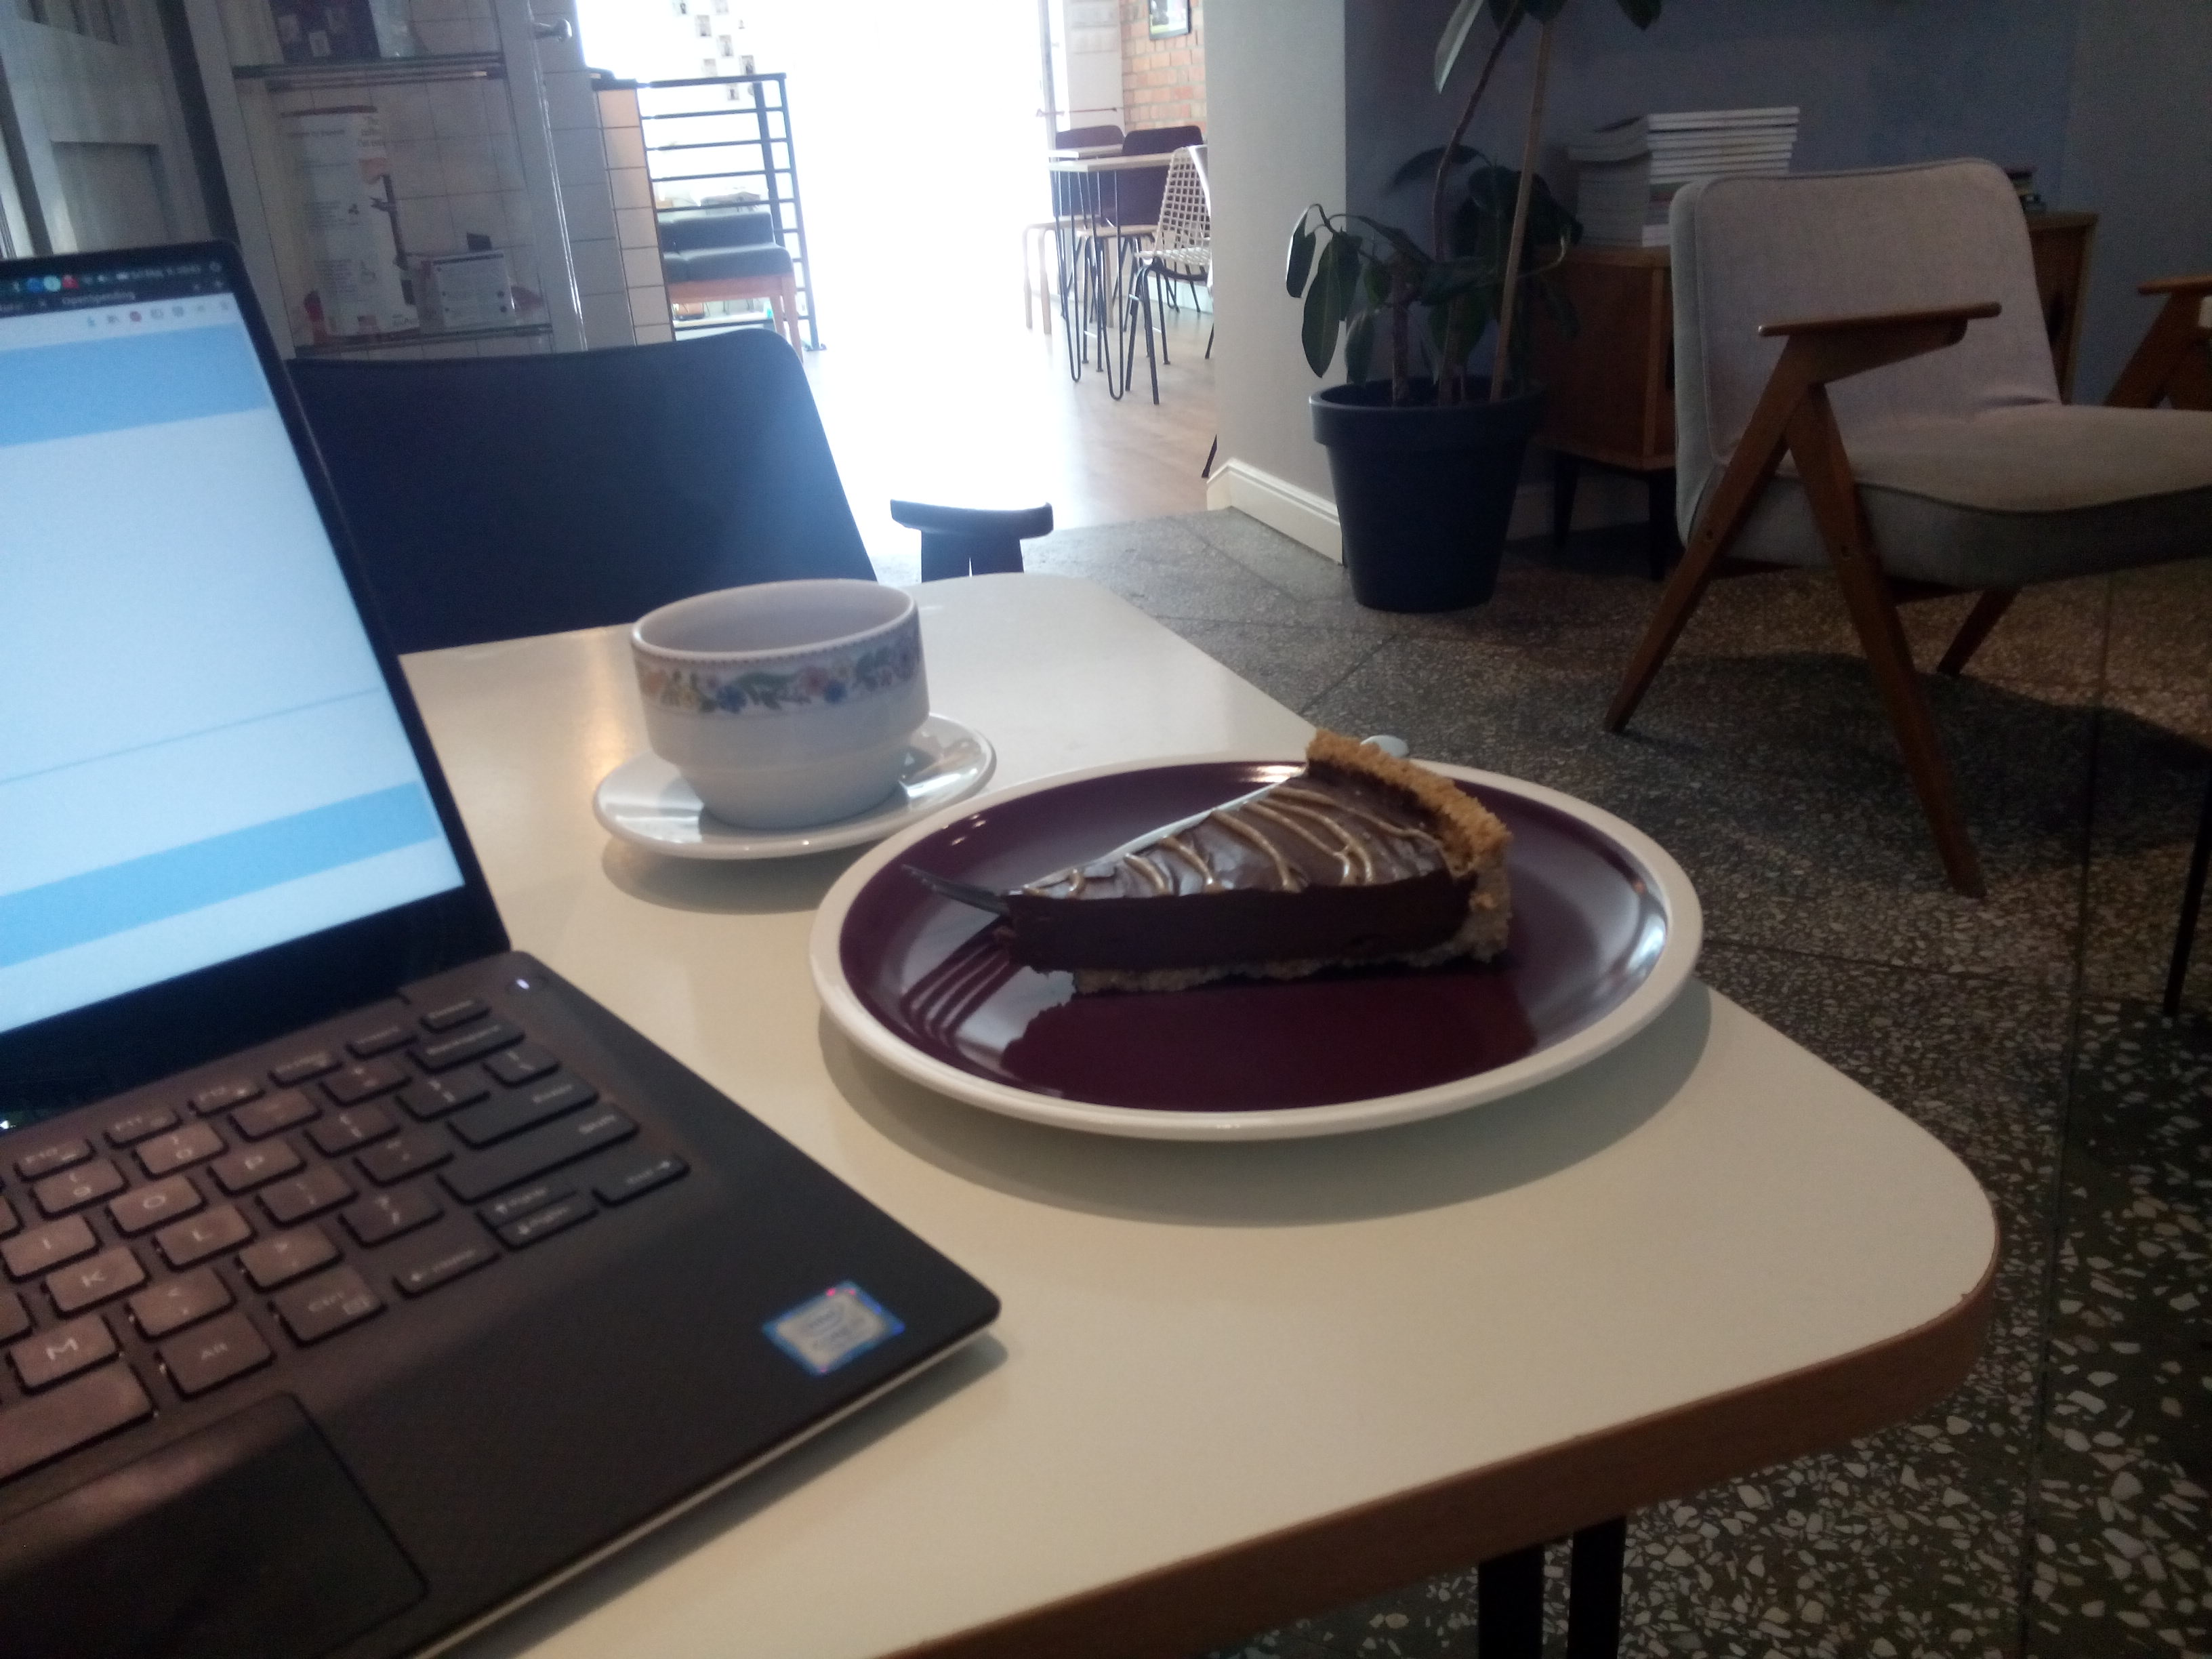 A table with a laptop on the left, and a cup of coffee and a plate with chocolate cake on it to the right; light coming in the cafe entrance in the distance